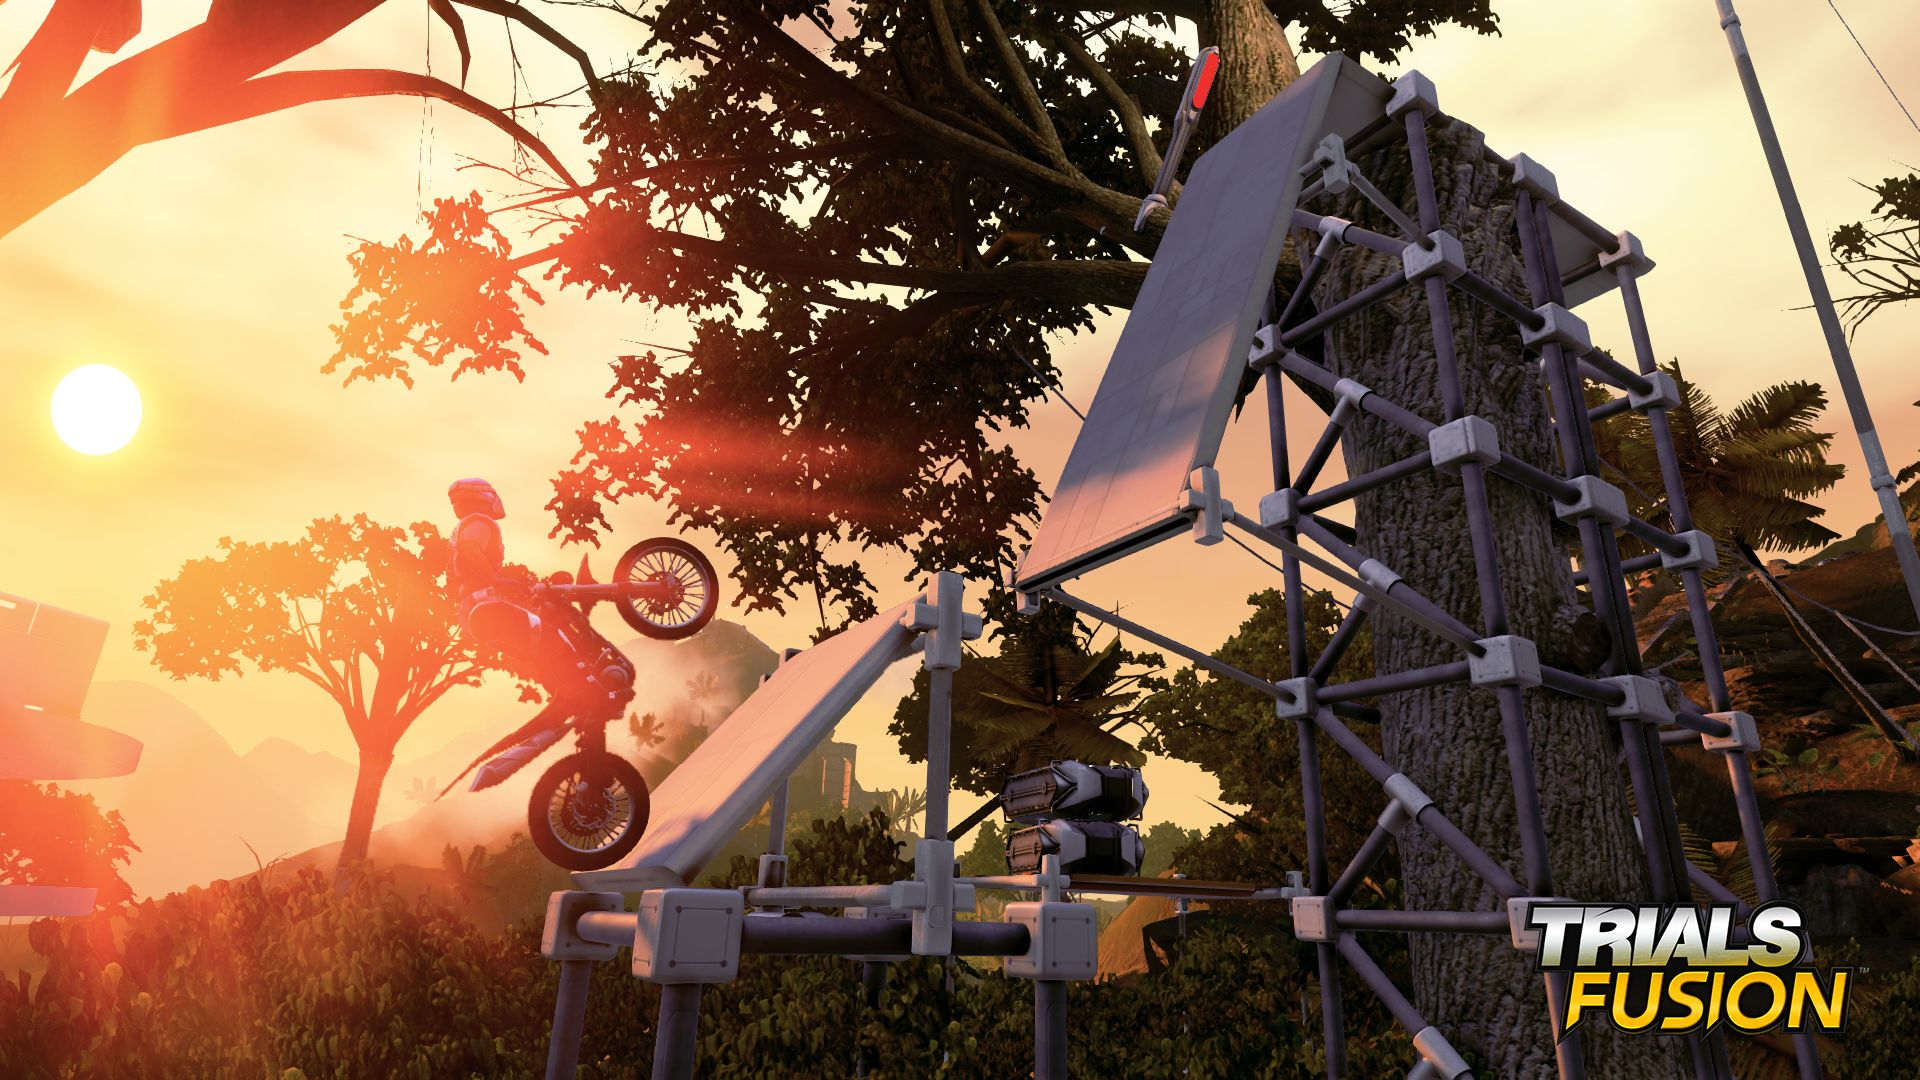 trials fusion wallpaper A4